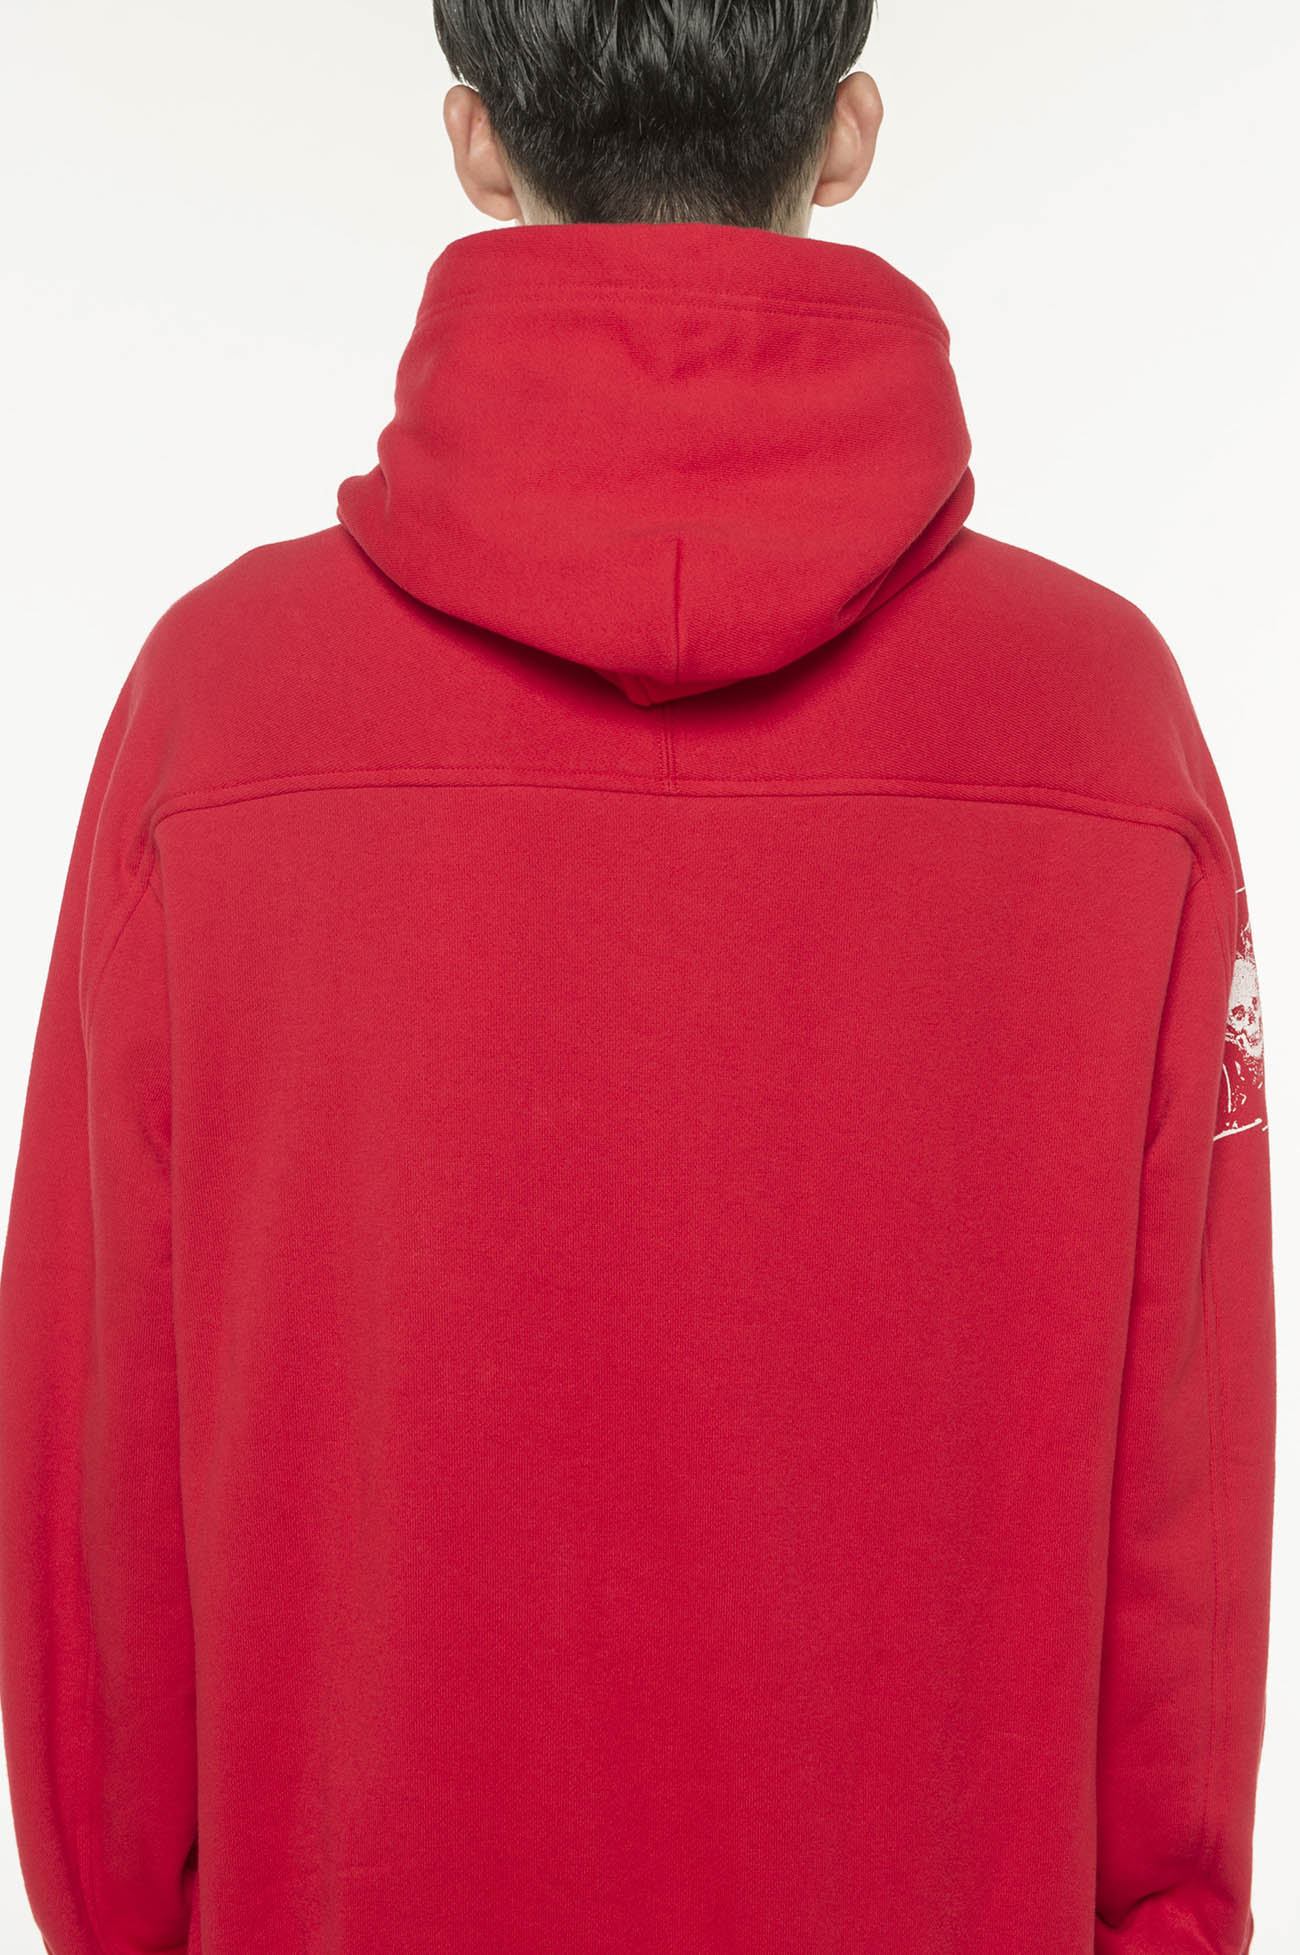 French Terry Stitch Work A Lot of Flowers & Carving Skull Hoodie In Red